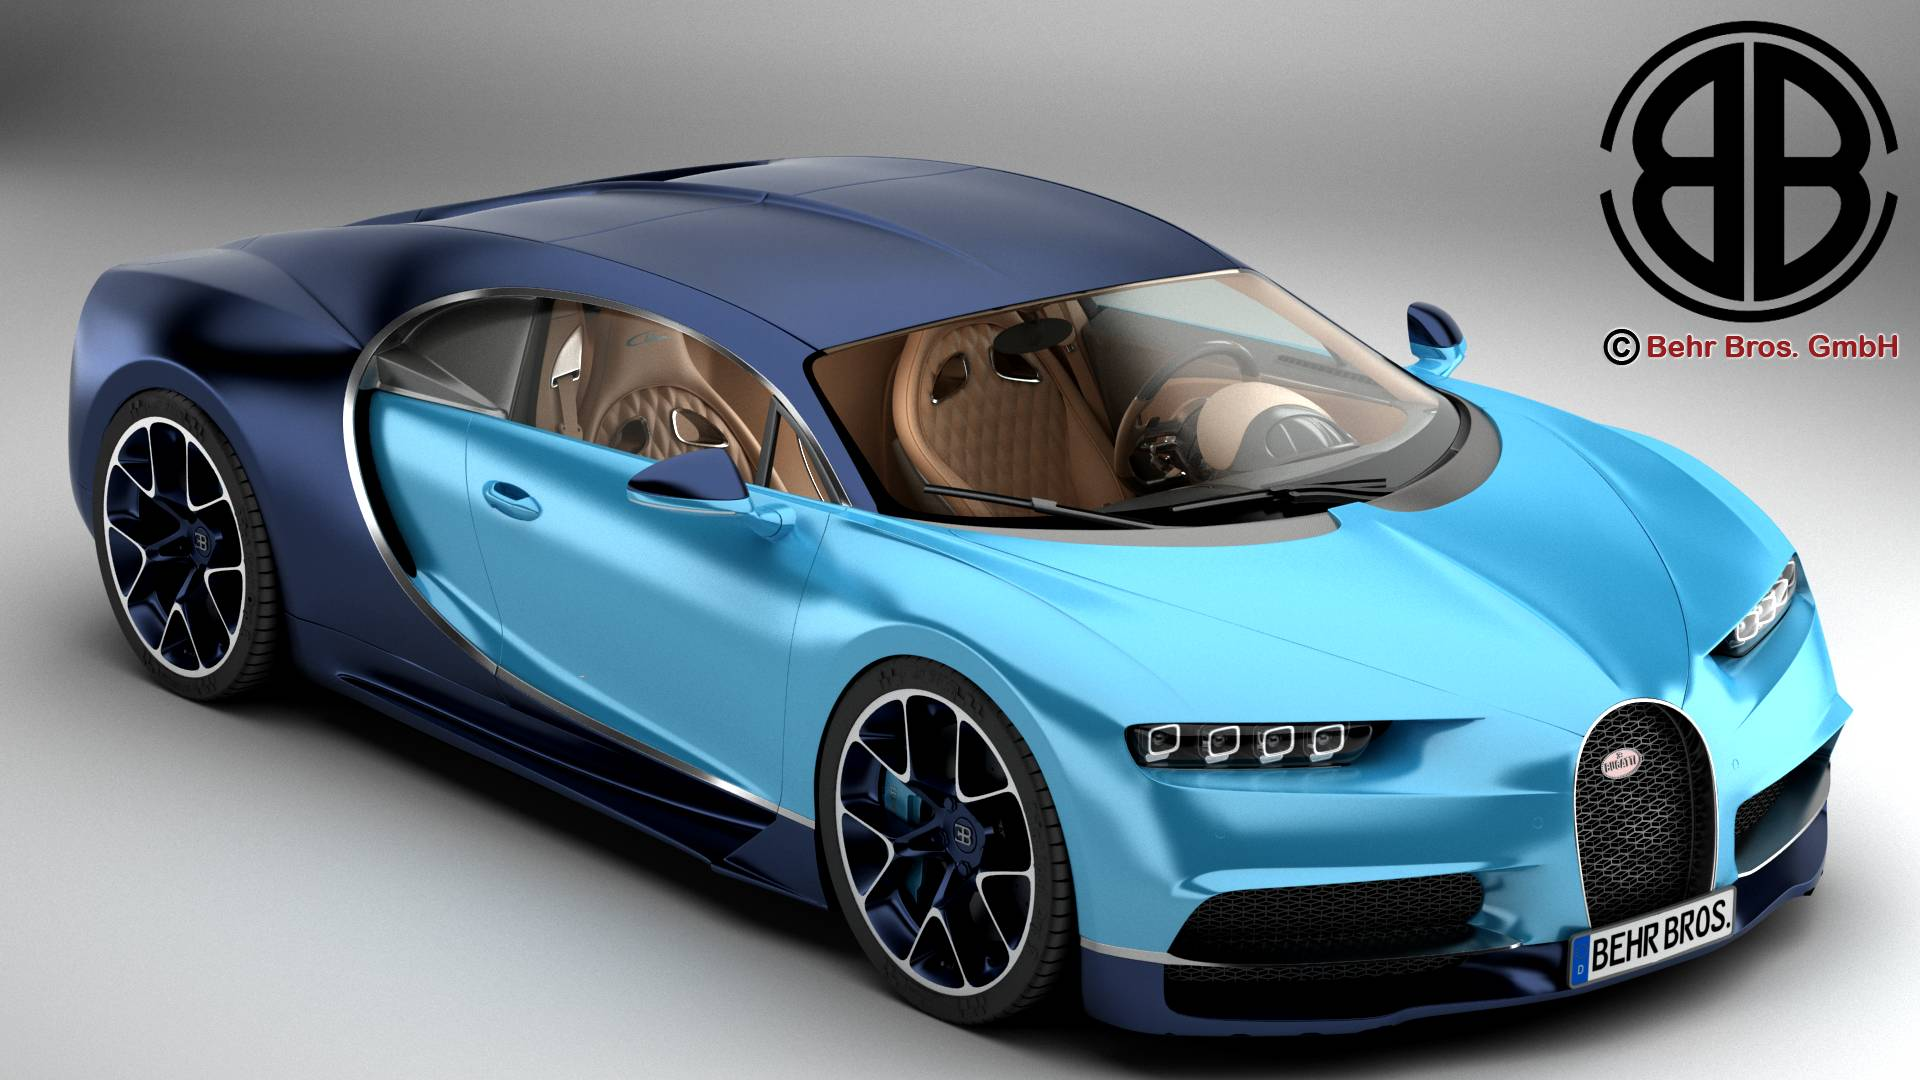 bugatti chiron 2017 3d model – buy bugatti chiron 2017 3d model